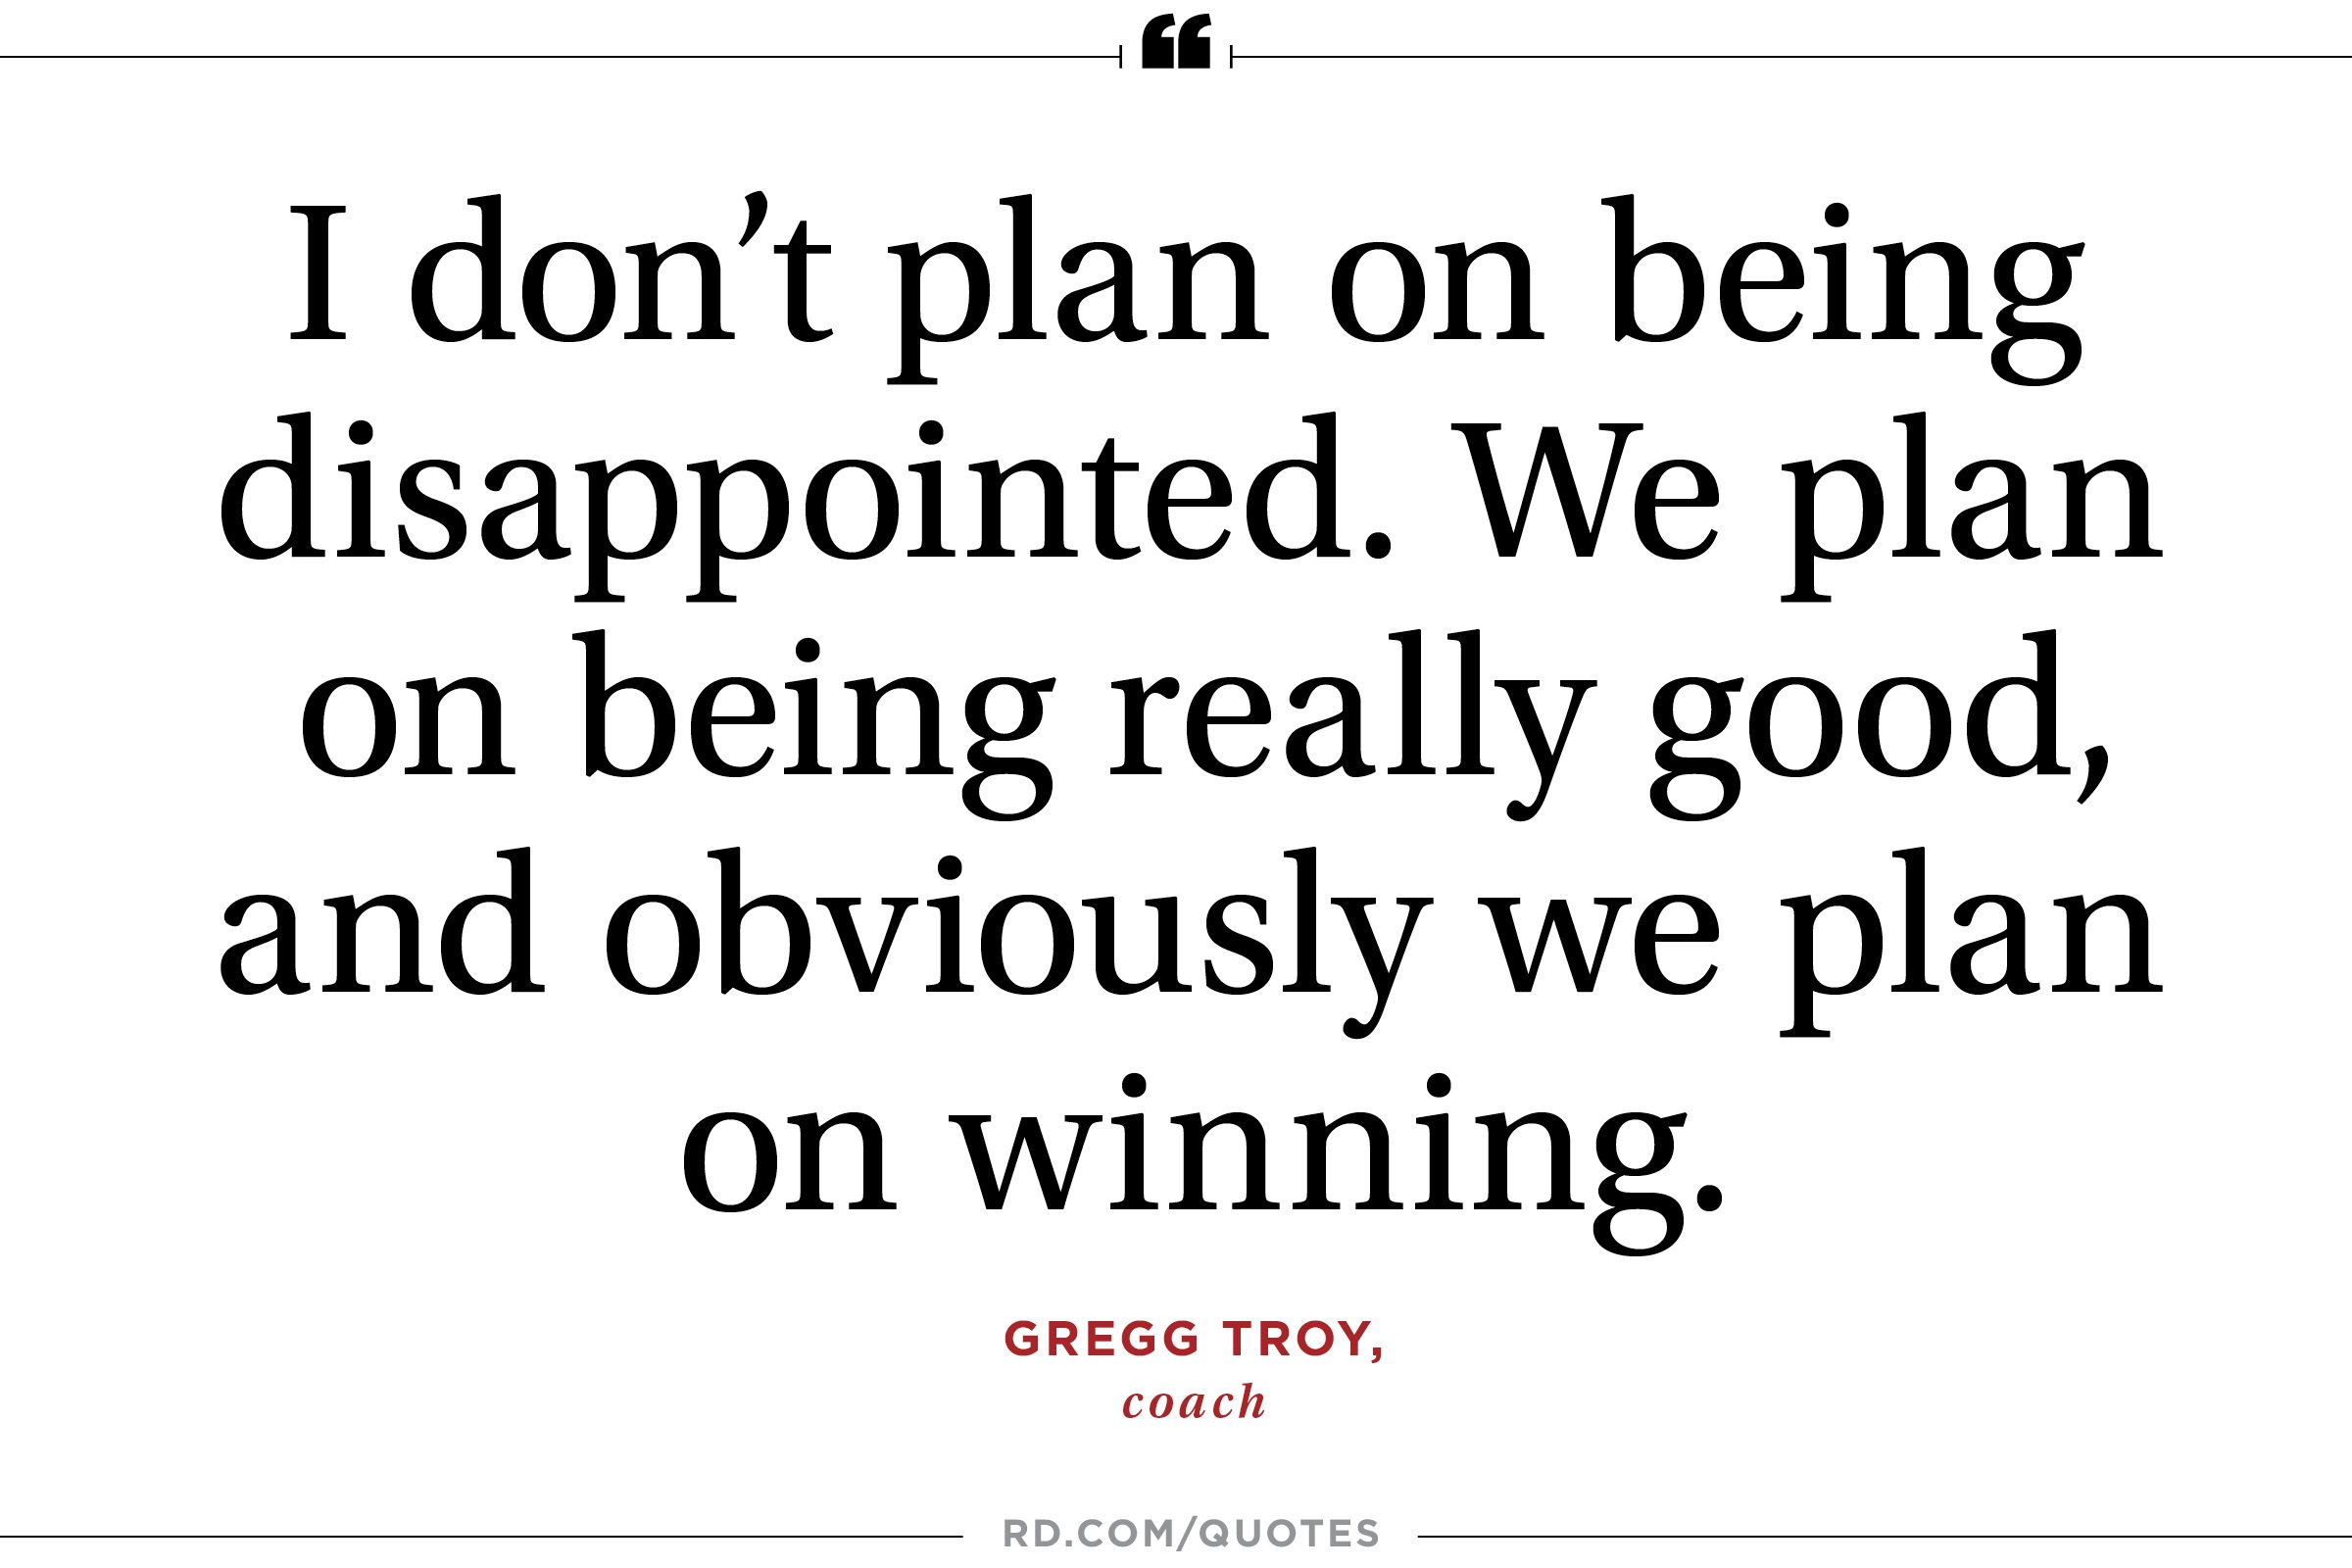 Really Good Quotes 13 Motivational Sports Quotes From Olympic Coaches  Reader's Digest